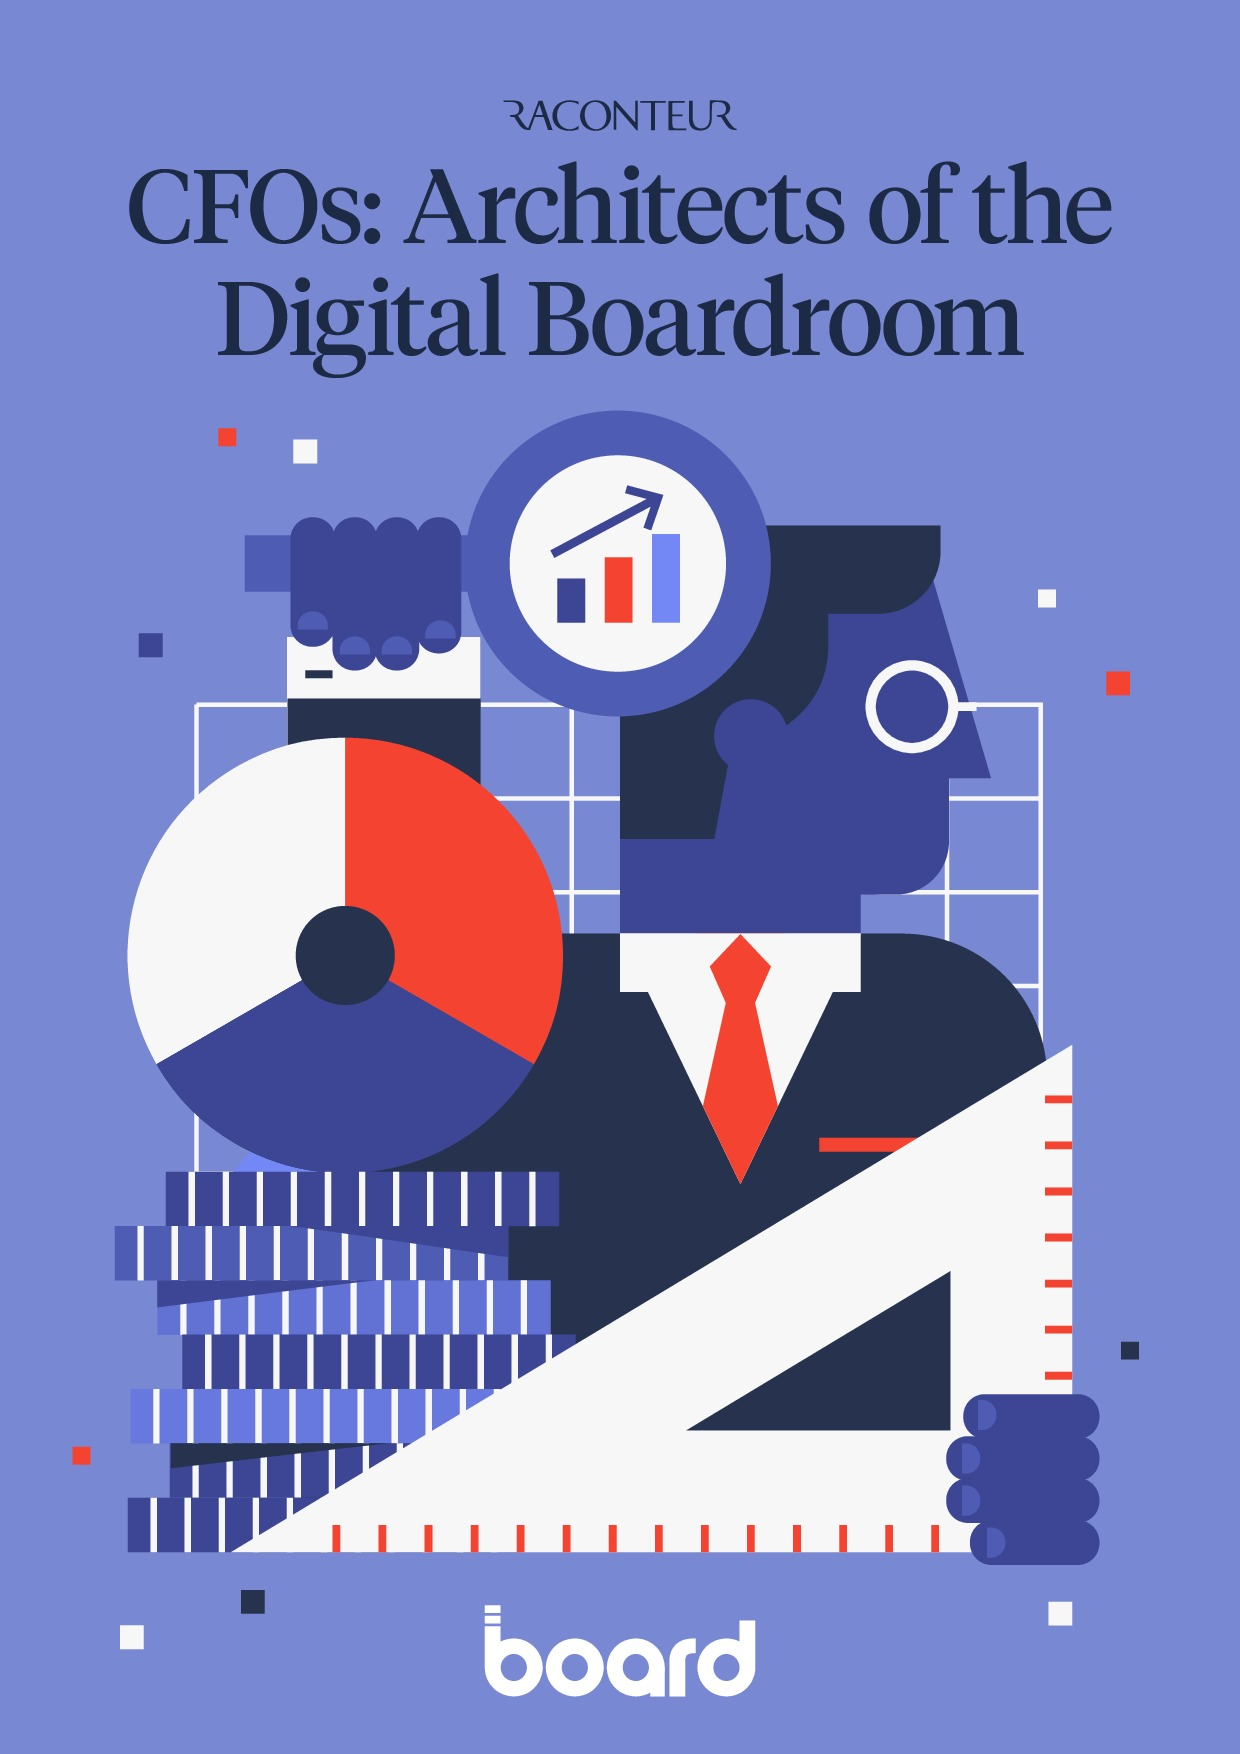 CFOs: Architects of the Digital Boardroom | Page 1